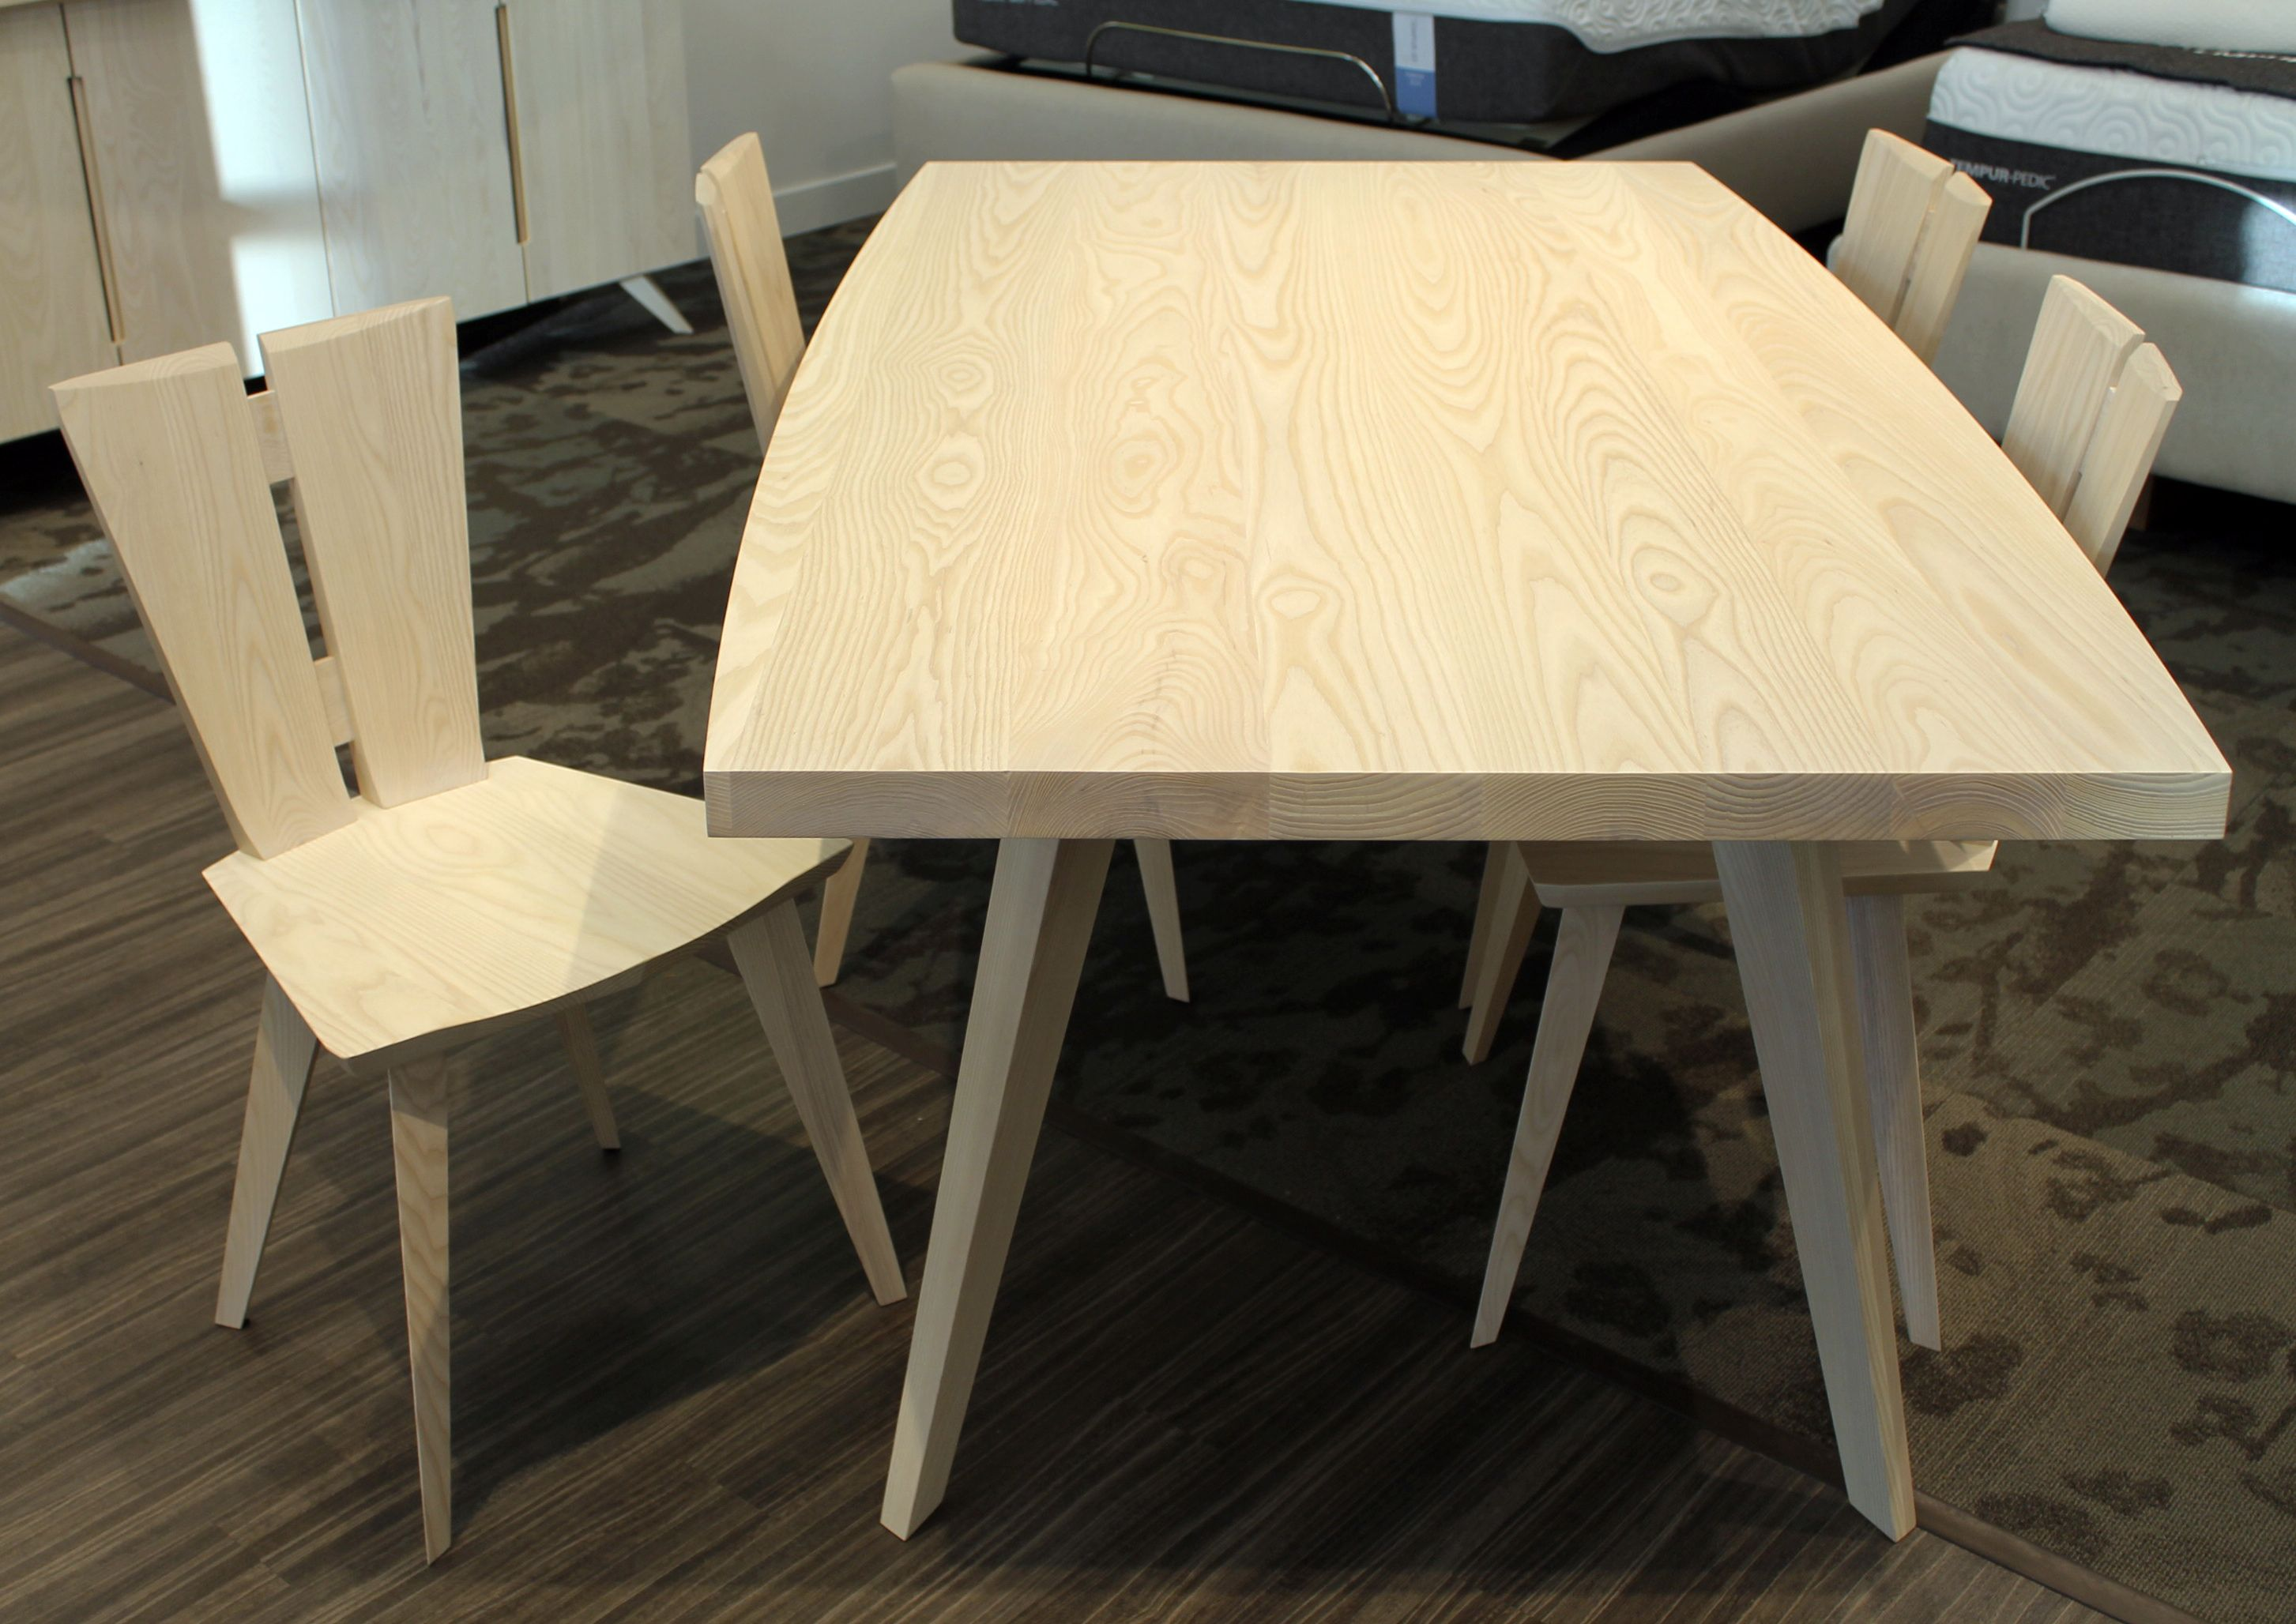 The axis dining table and chairs by copeland furniture in vermont sustainable solid wood ash design